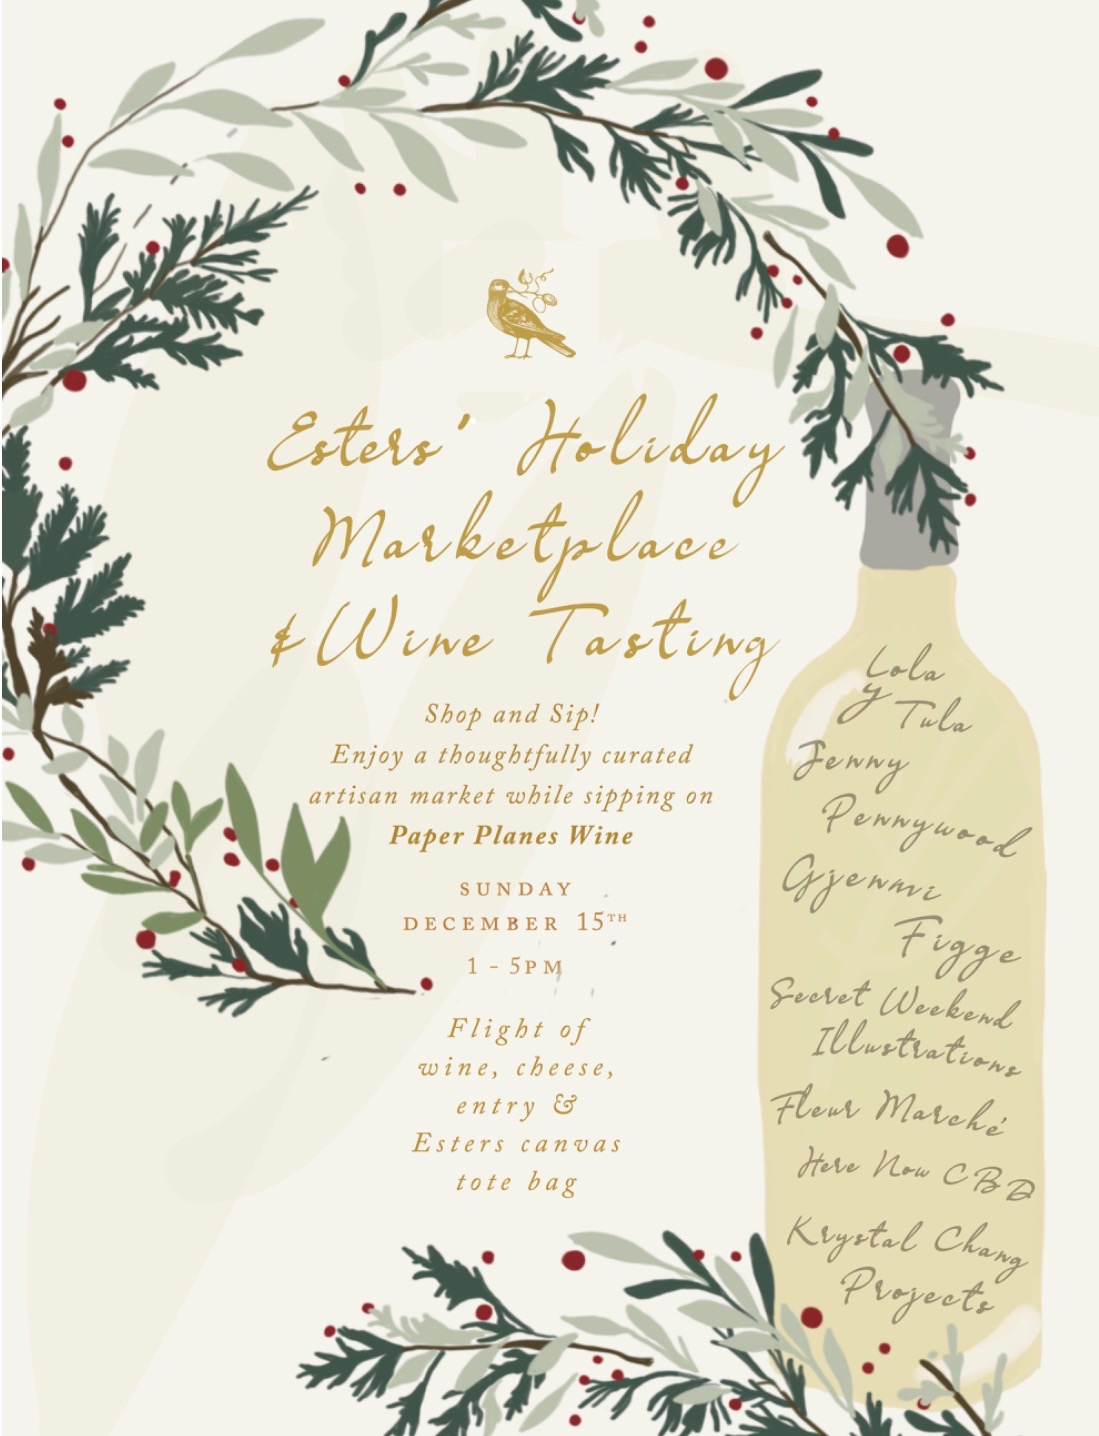 Holiday Marketplace and Wine Tasting at Esters Wine Shop & Bar